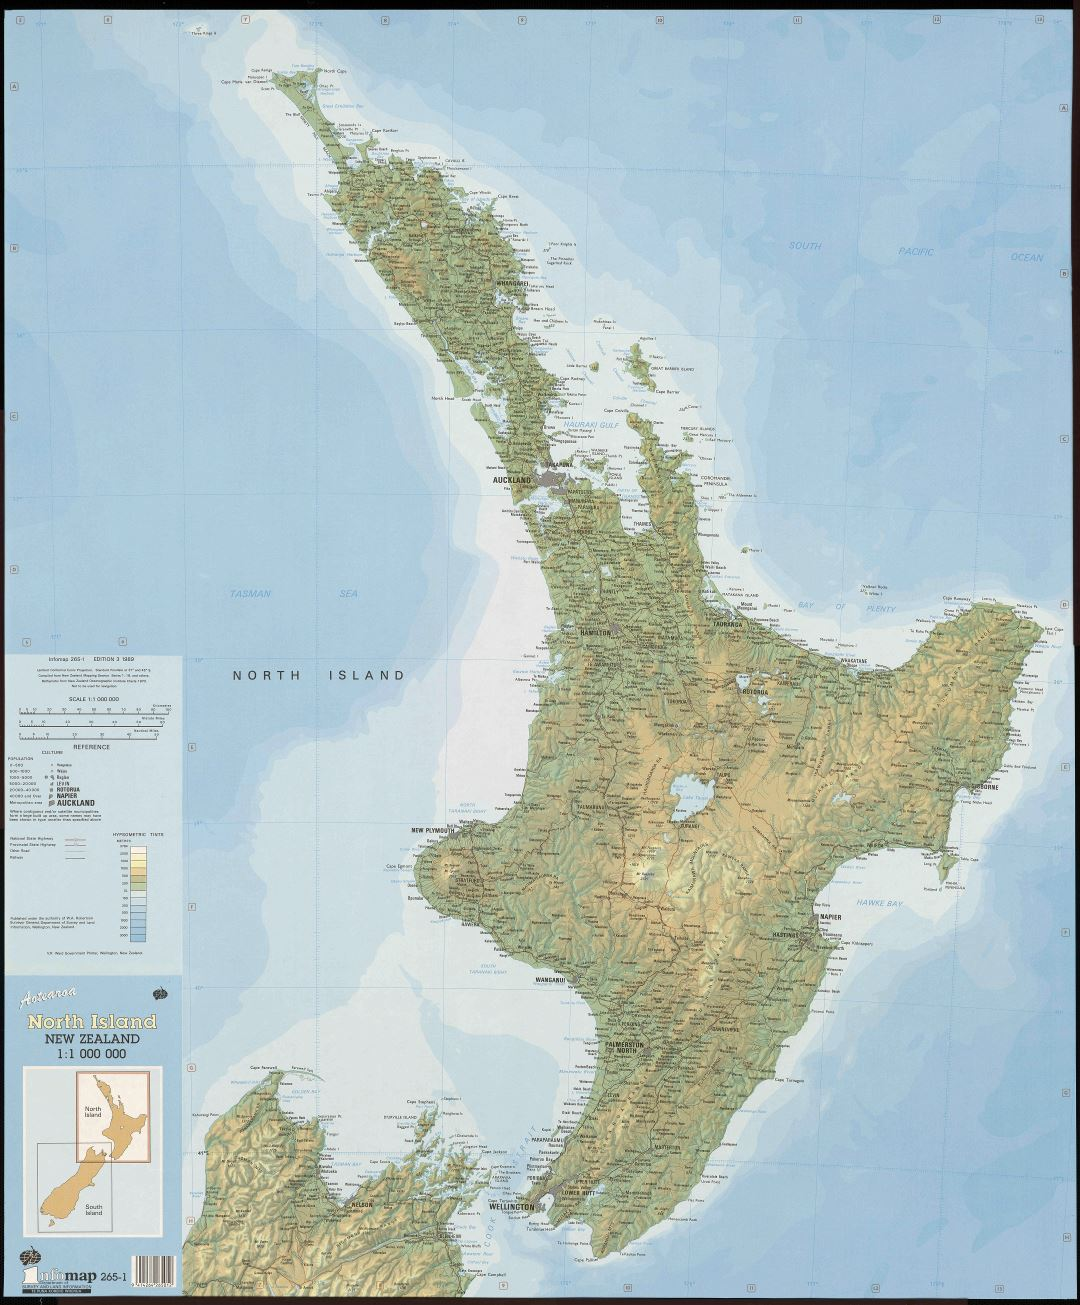 Large scale map of North Island, New Zealand with relief, marks of all cities, roads, railroads and other marks